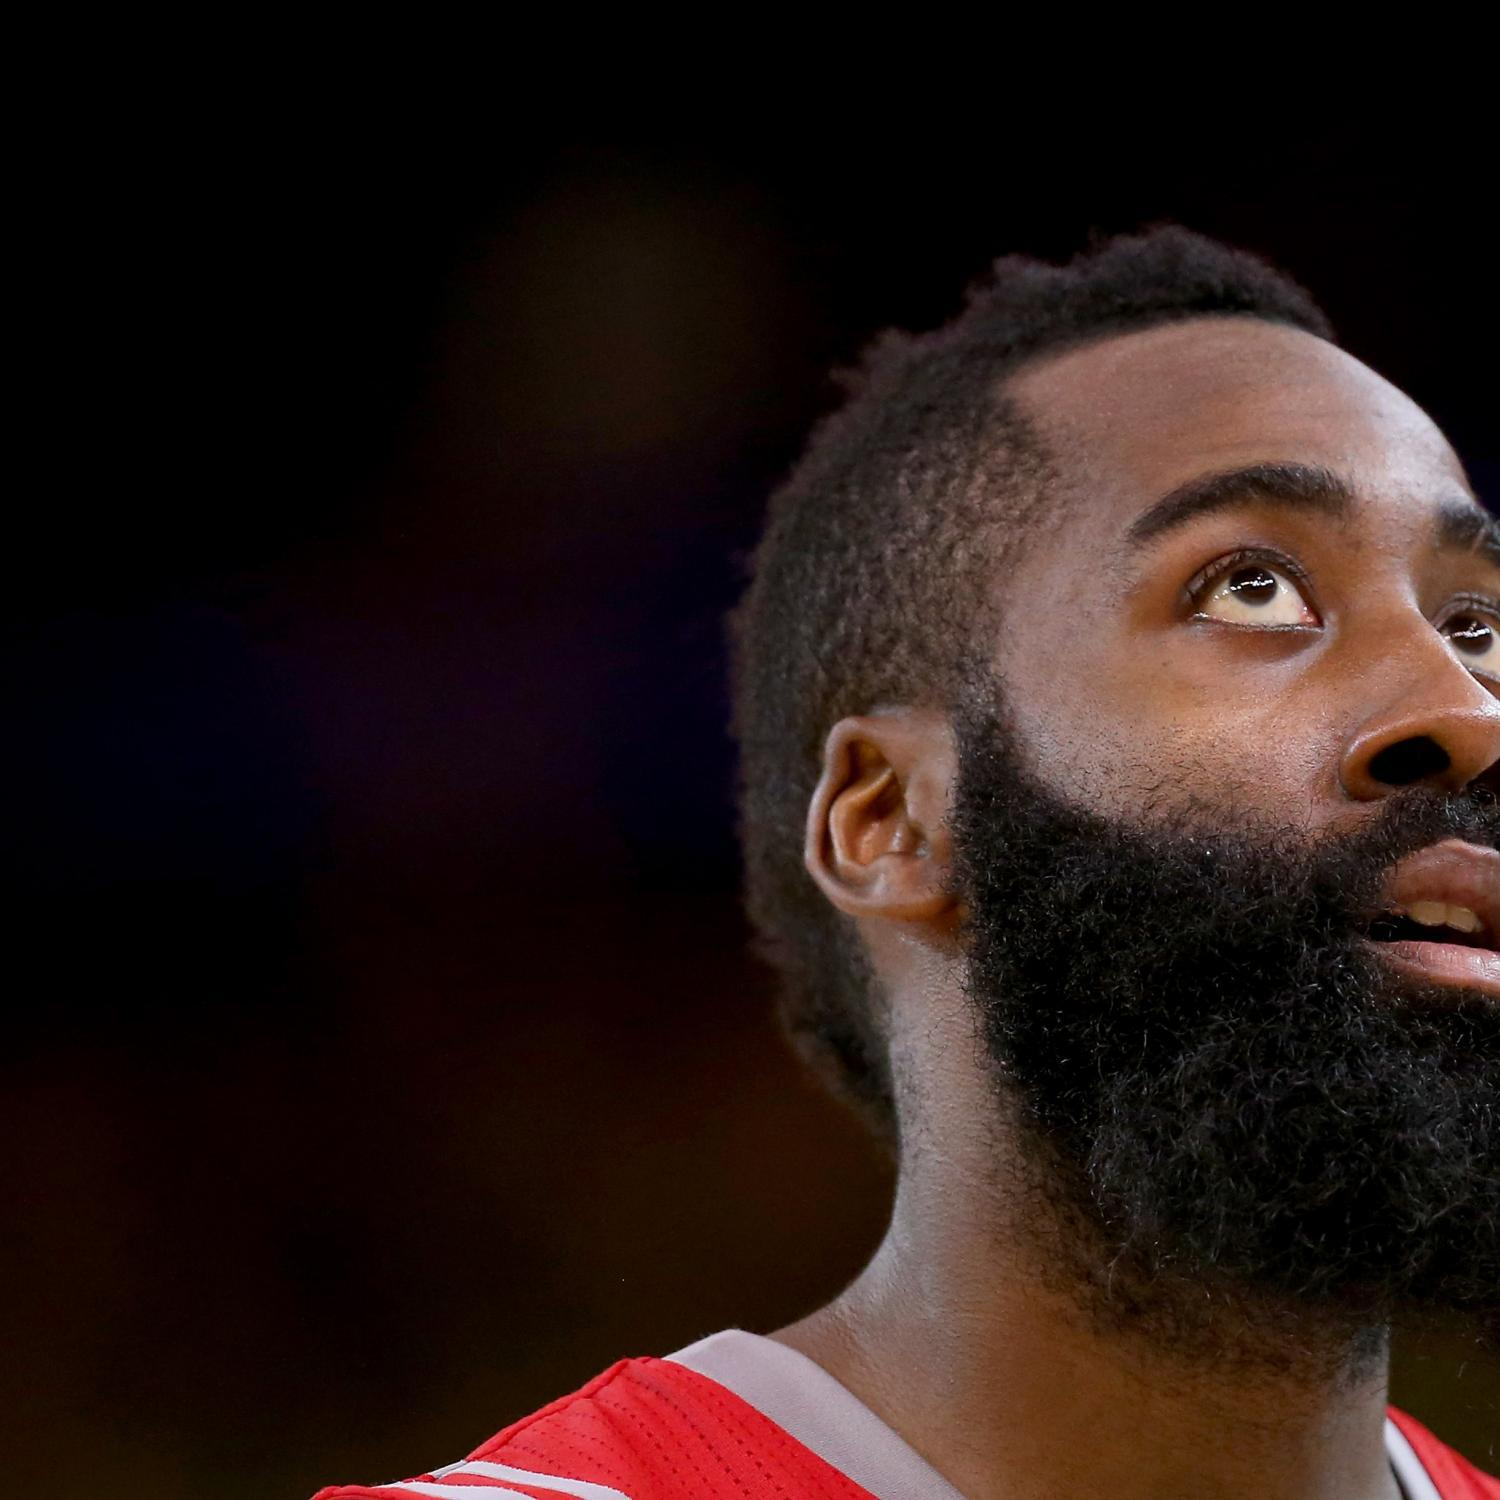 James Harden Nba Records: James Harden Sets NBA Single-Game Playoff Record With 13